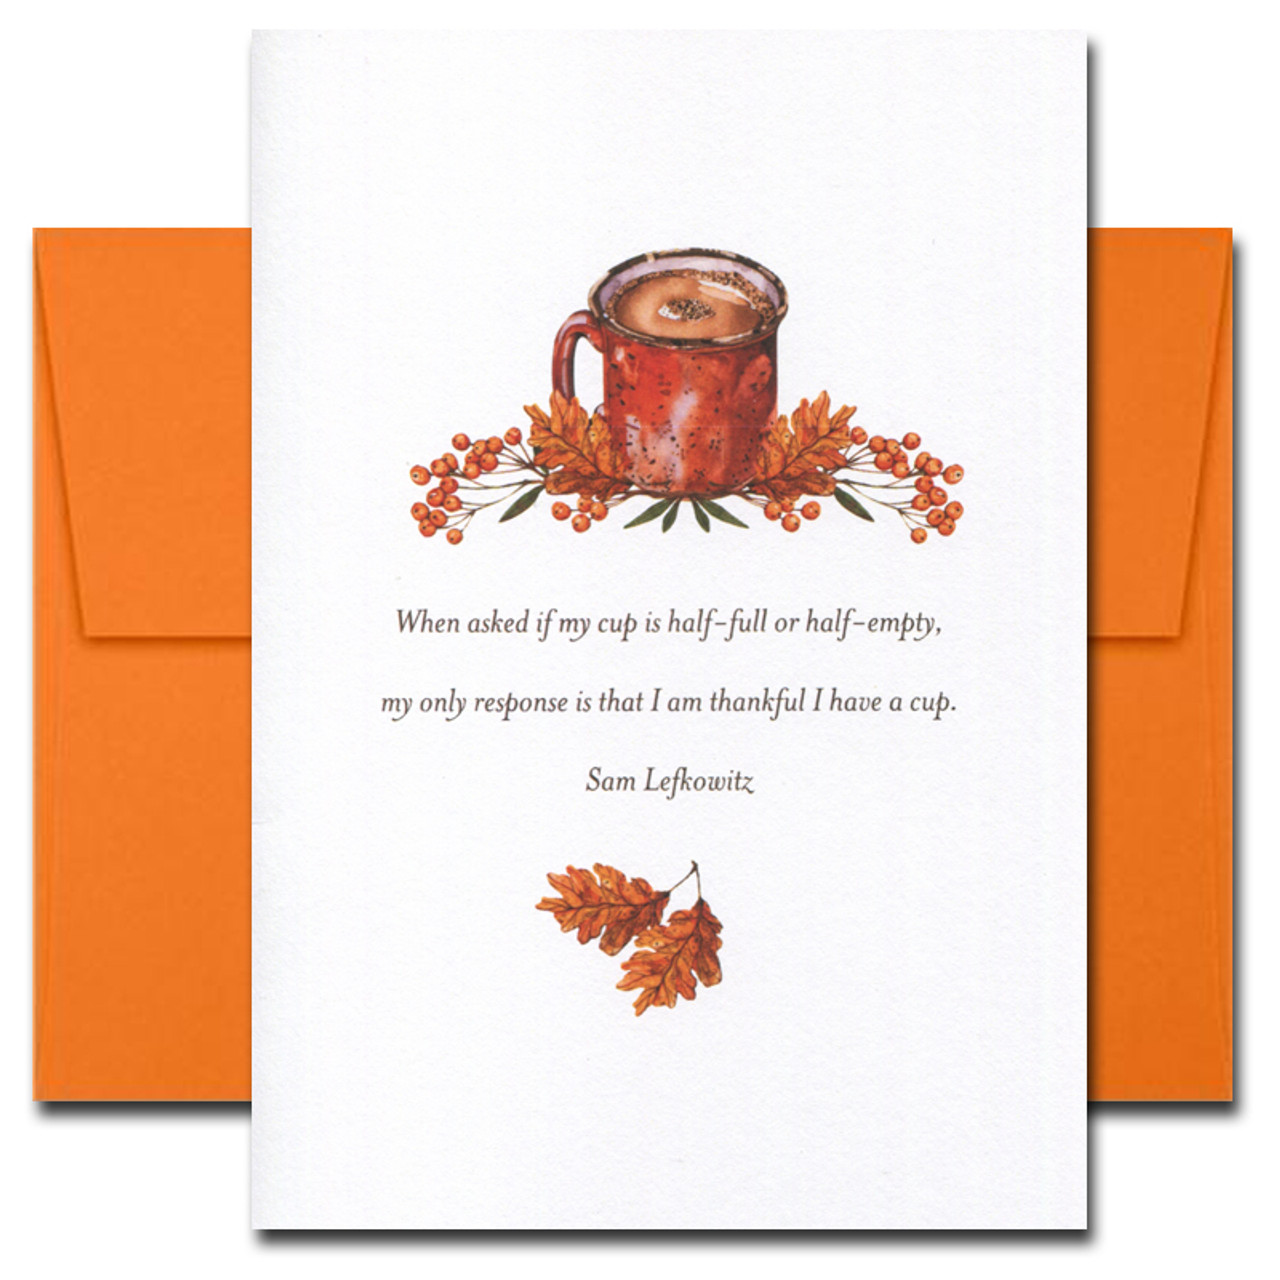 Cup Thanksgiving card cover features a cup and the quote: When asked if my cup is half-full or half-empty, my only response is that I am thankful I have a cup. -Sam Lefkowitz